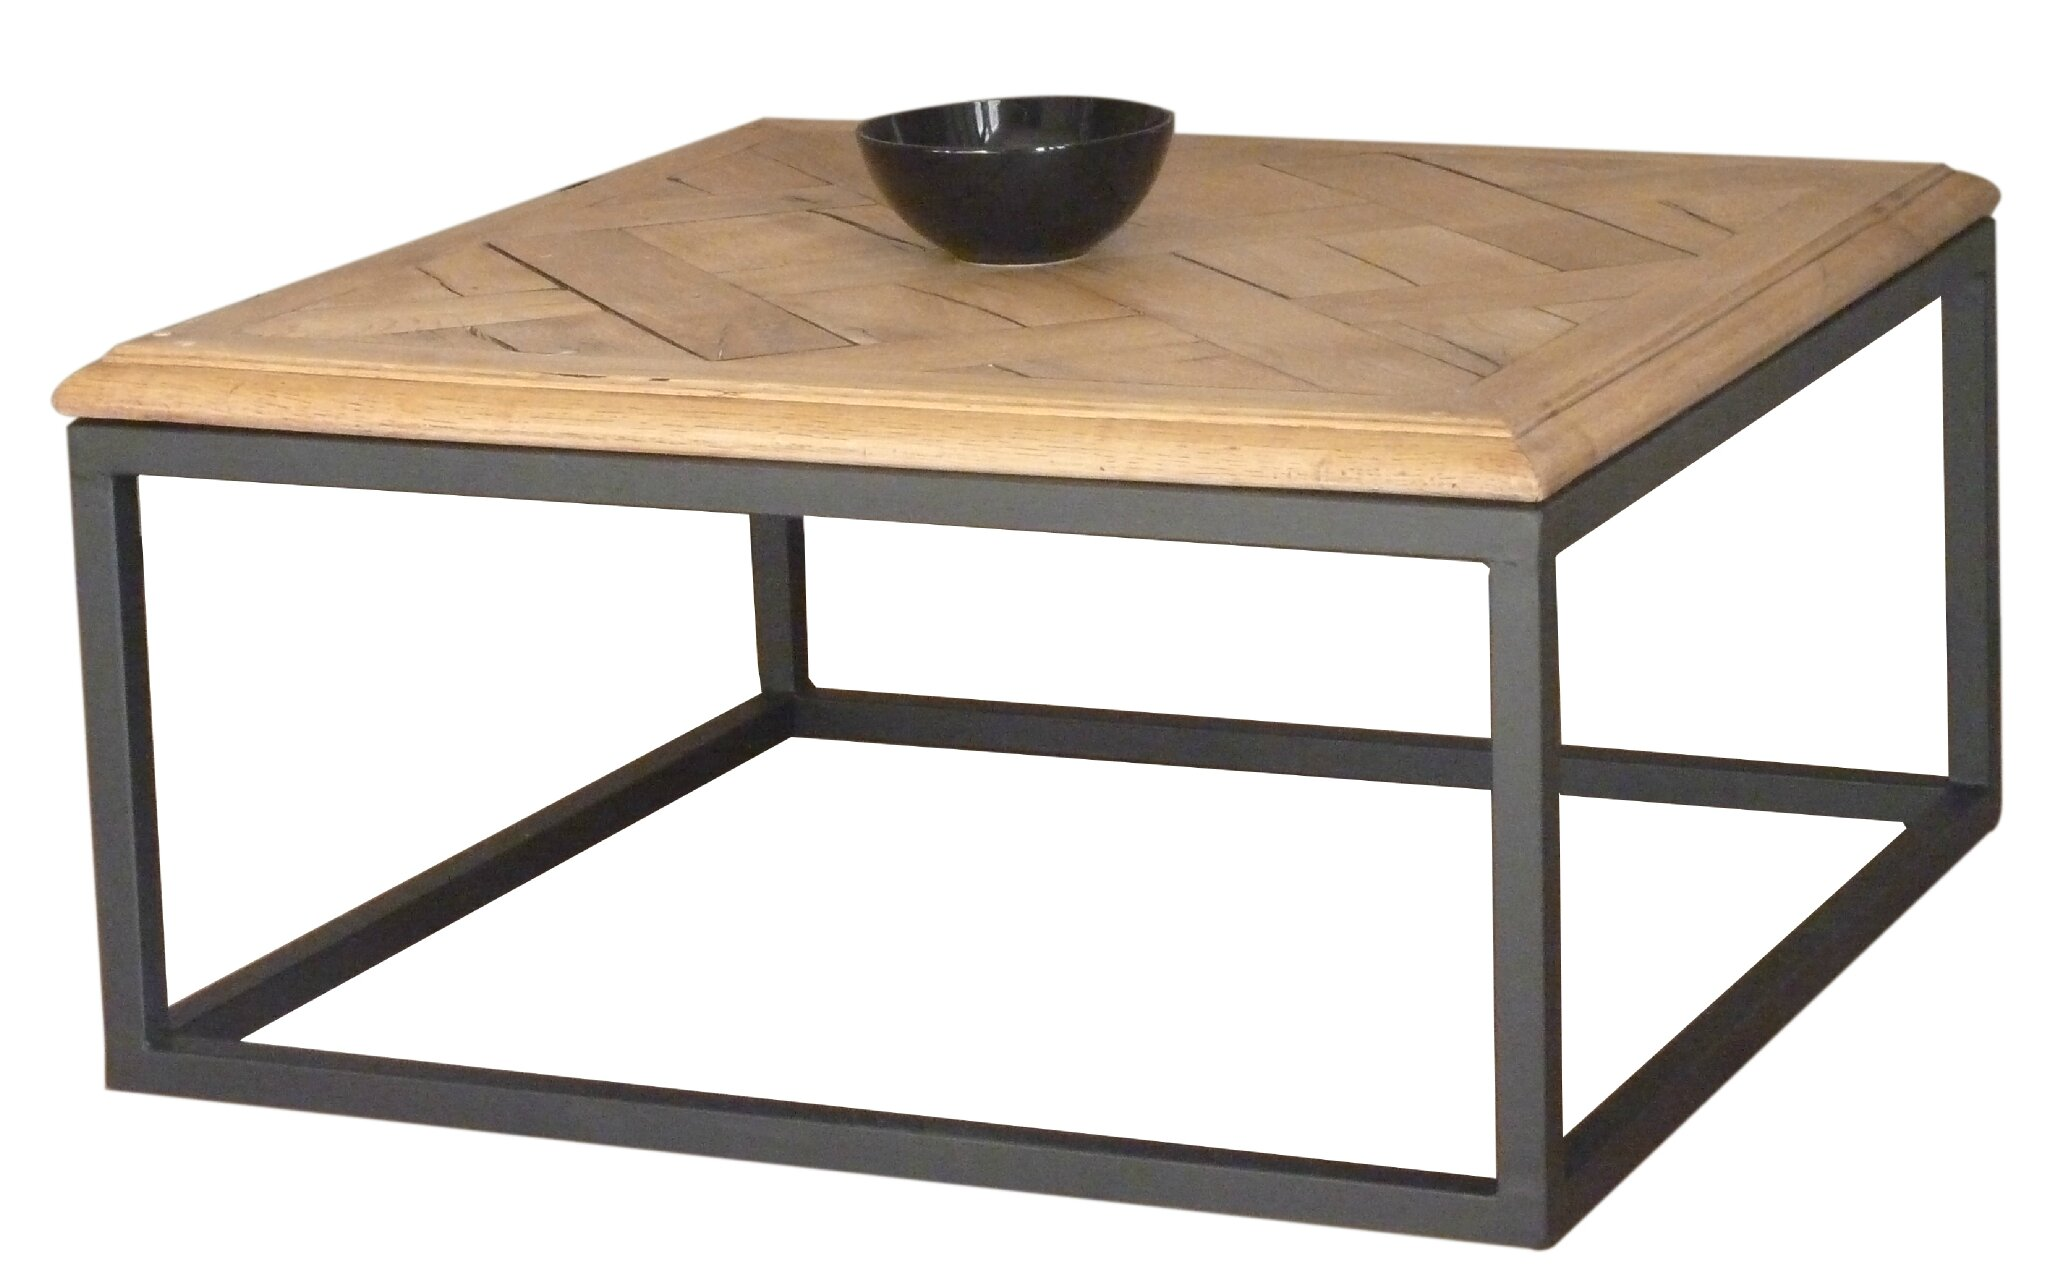 Ma table basse industrielle au 42 home - Table basse style industriel pas cher ...